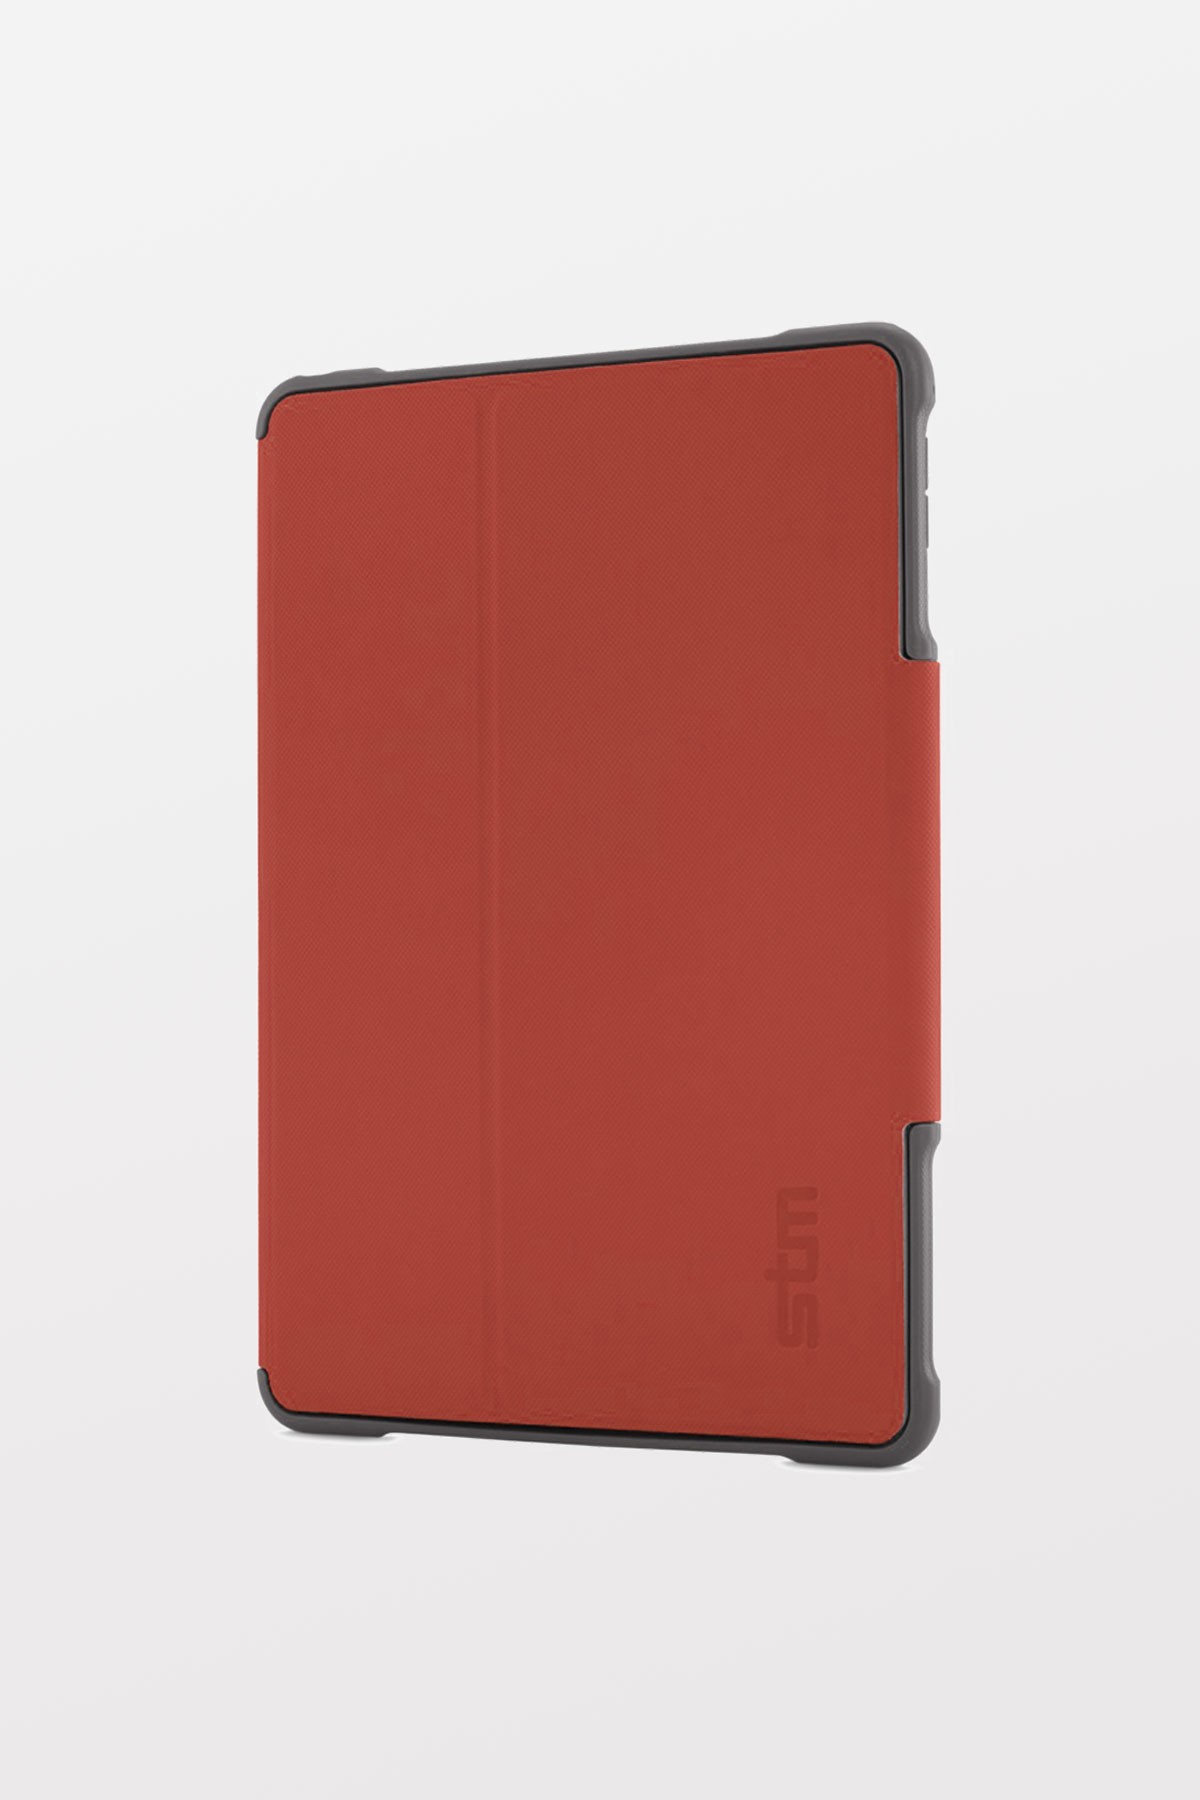 STM Dux for iPad Mini 4 - Red